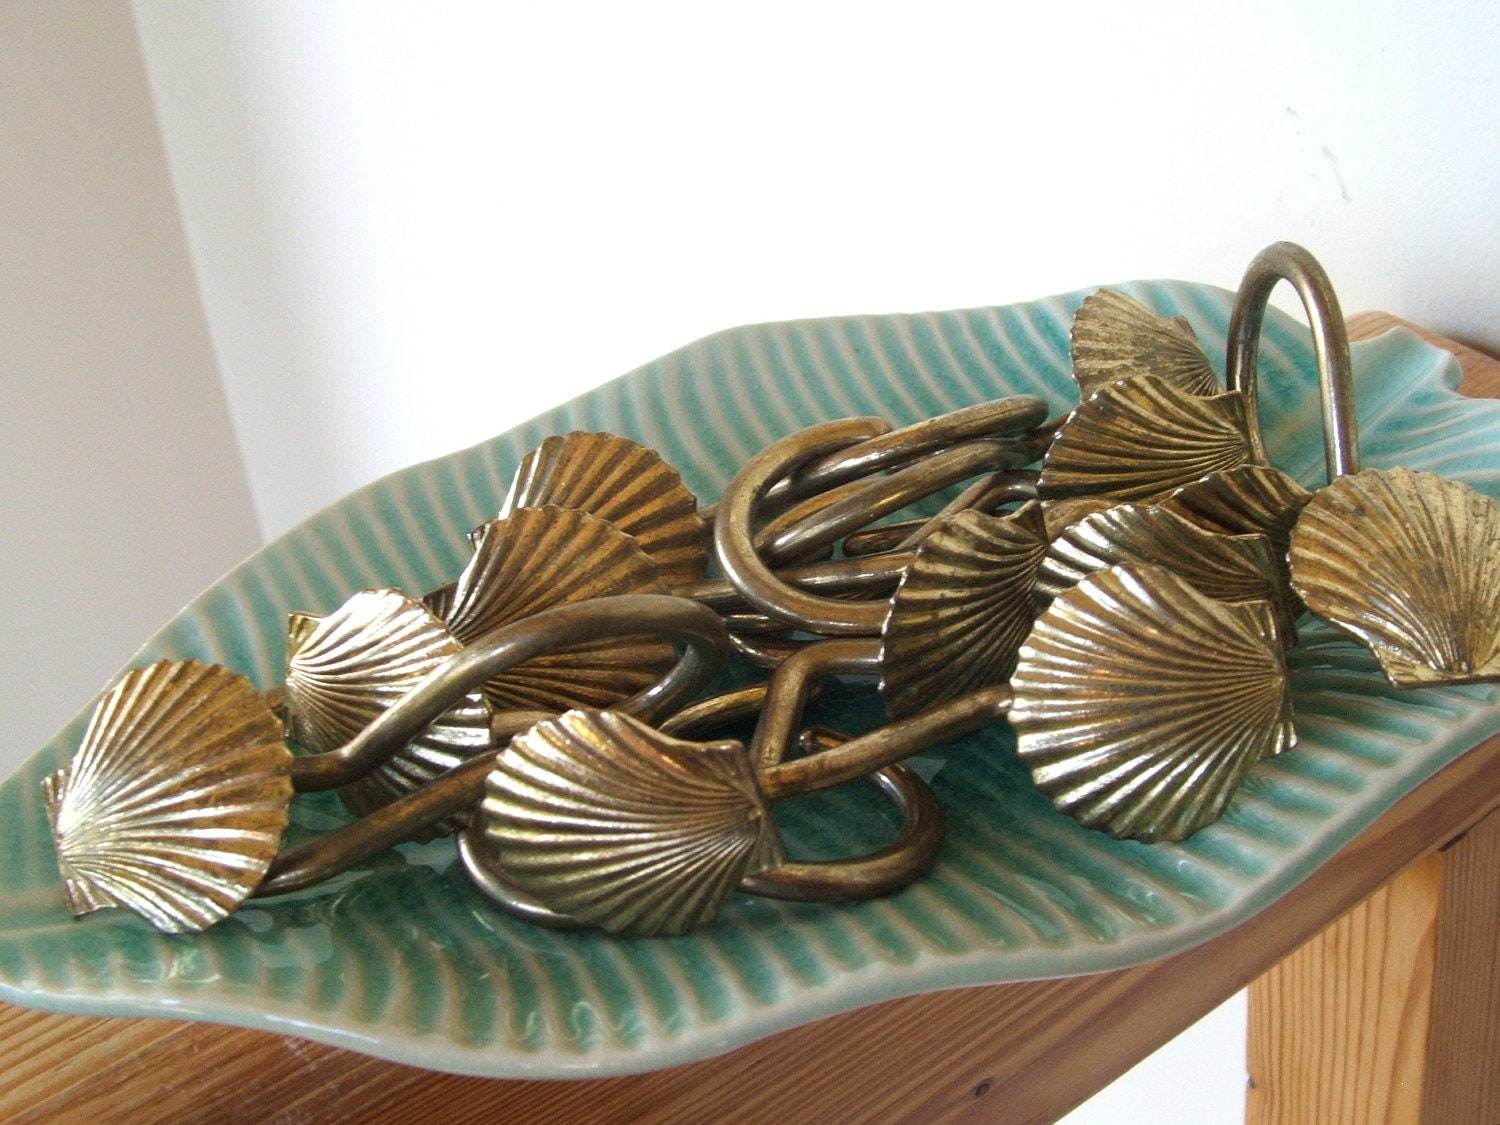 12 Brass Seashell Shower Curtain Hooks by lookonmytreasures